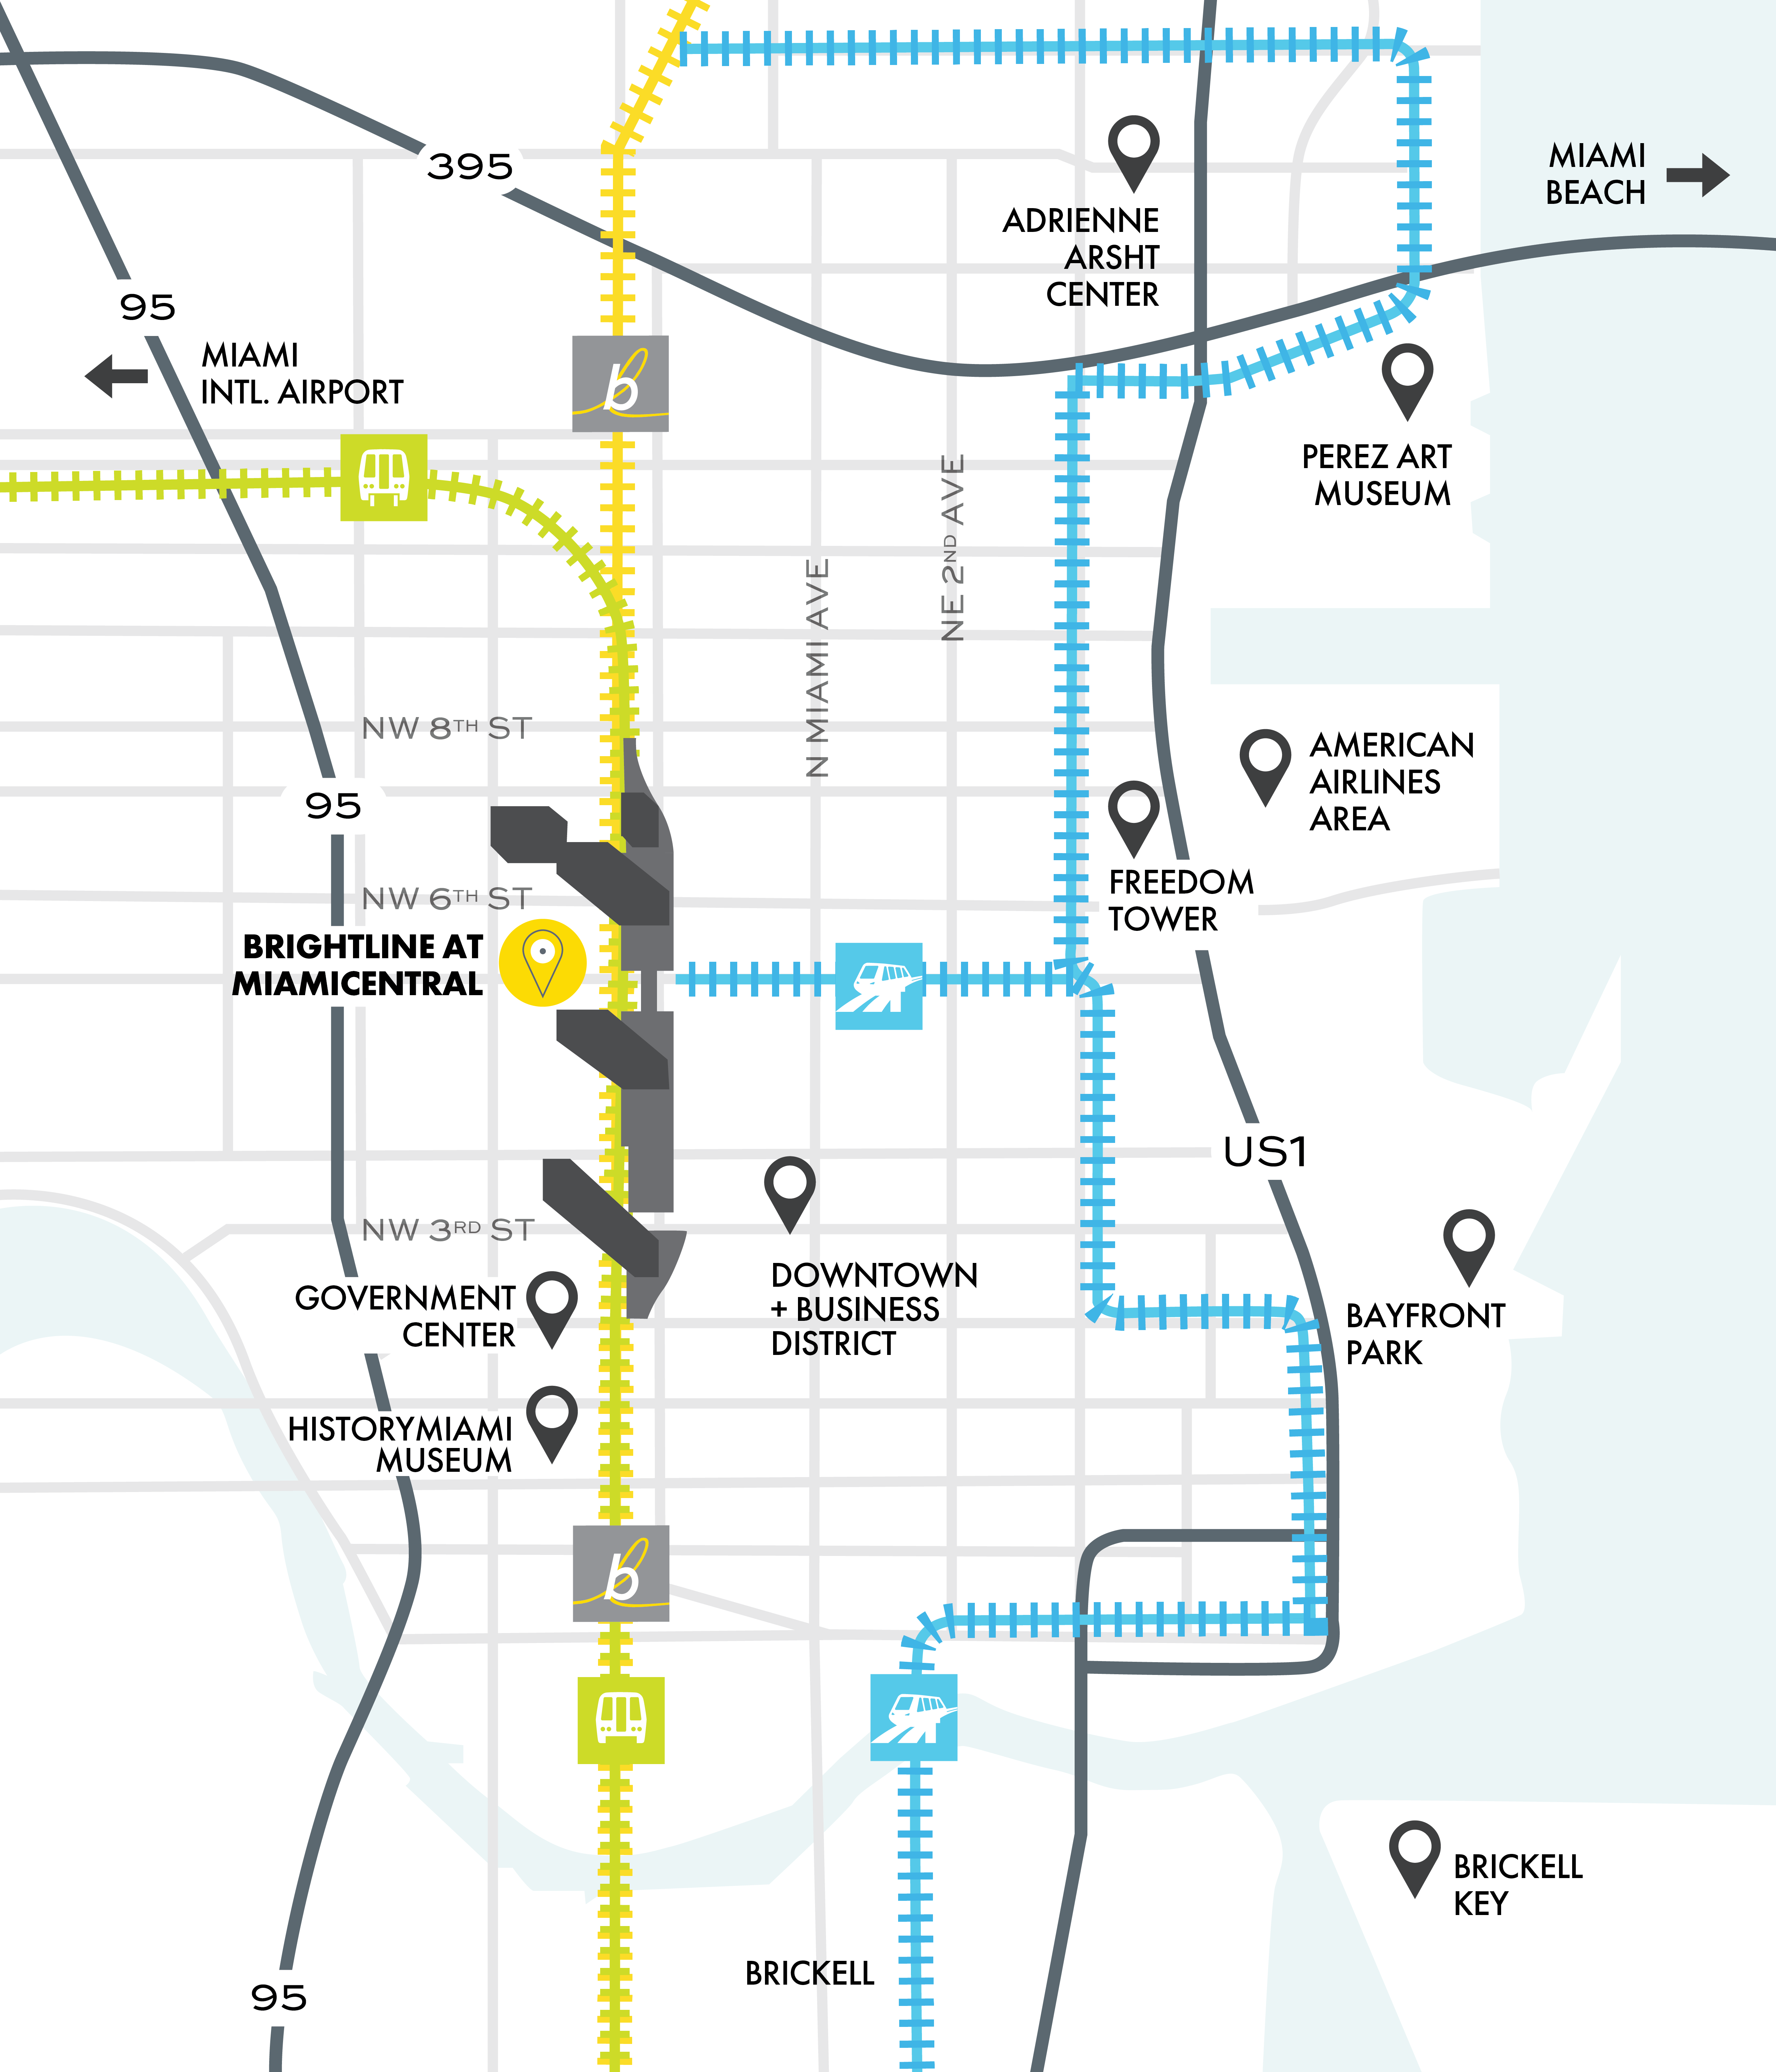 Miami service map with nearby attractions.